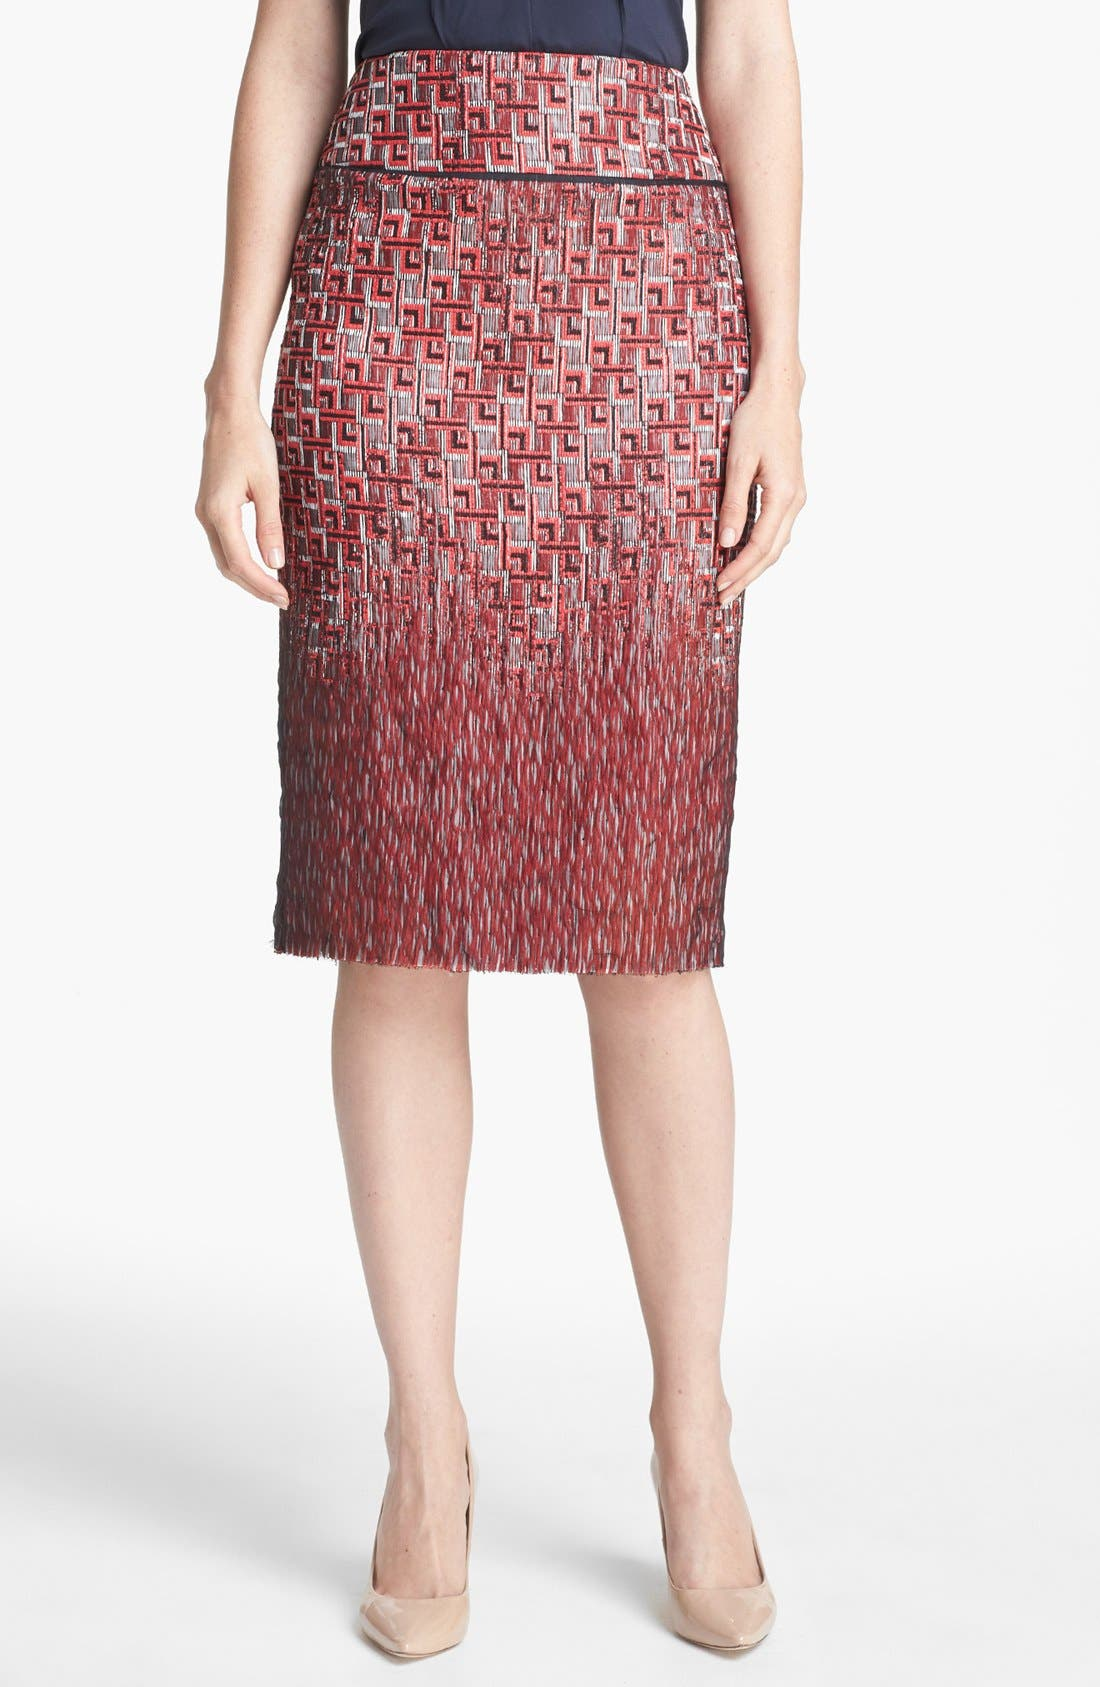 Alternate Image 1 Selected - Tory Burch 'Ruby' Jacquard Skirt